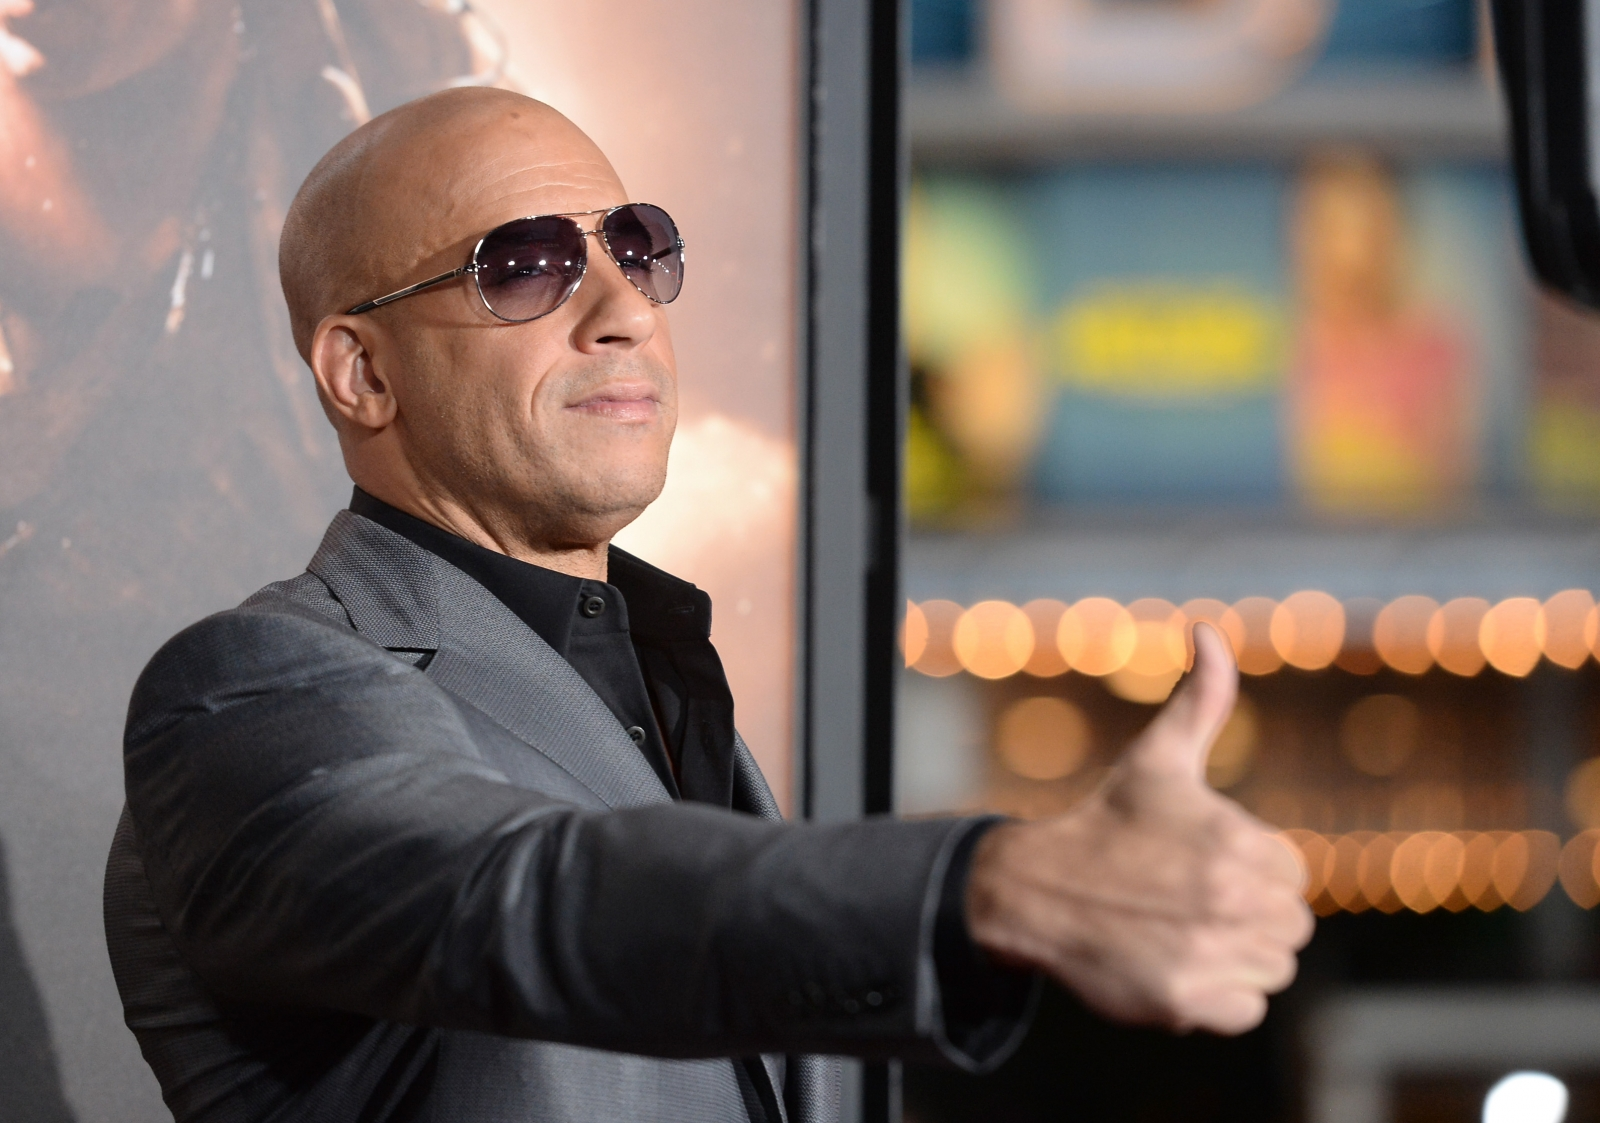 xxx-with-vin-diesel-big-ass-latina-tubes-thumbs